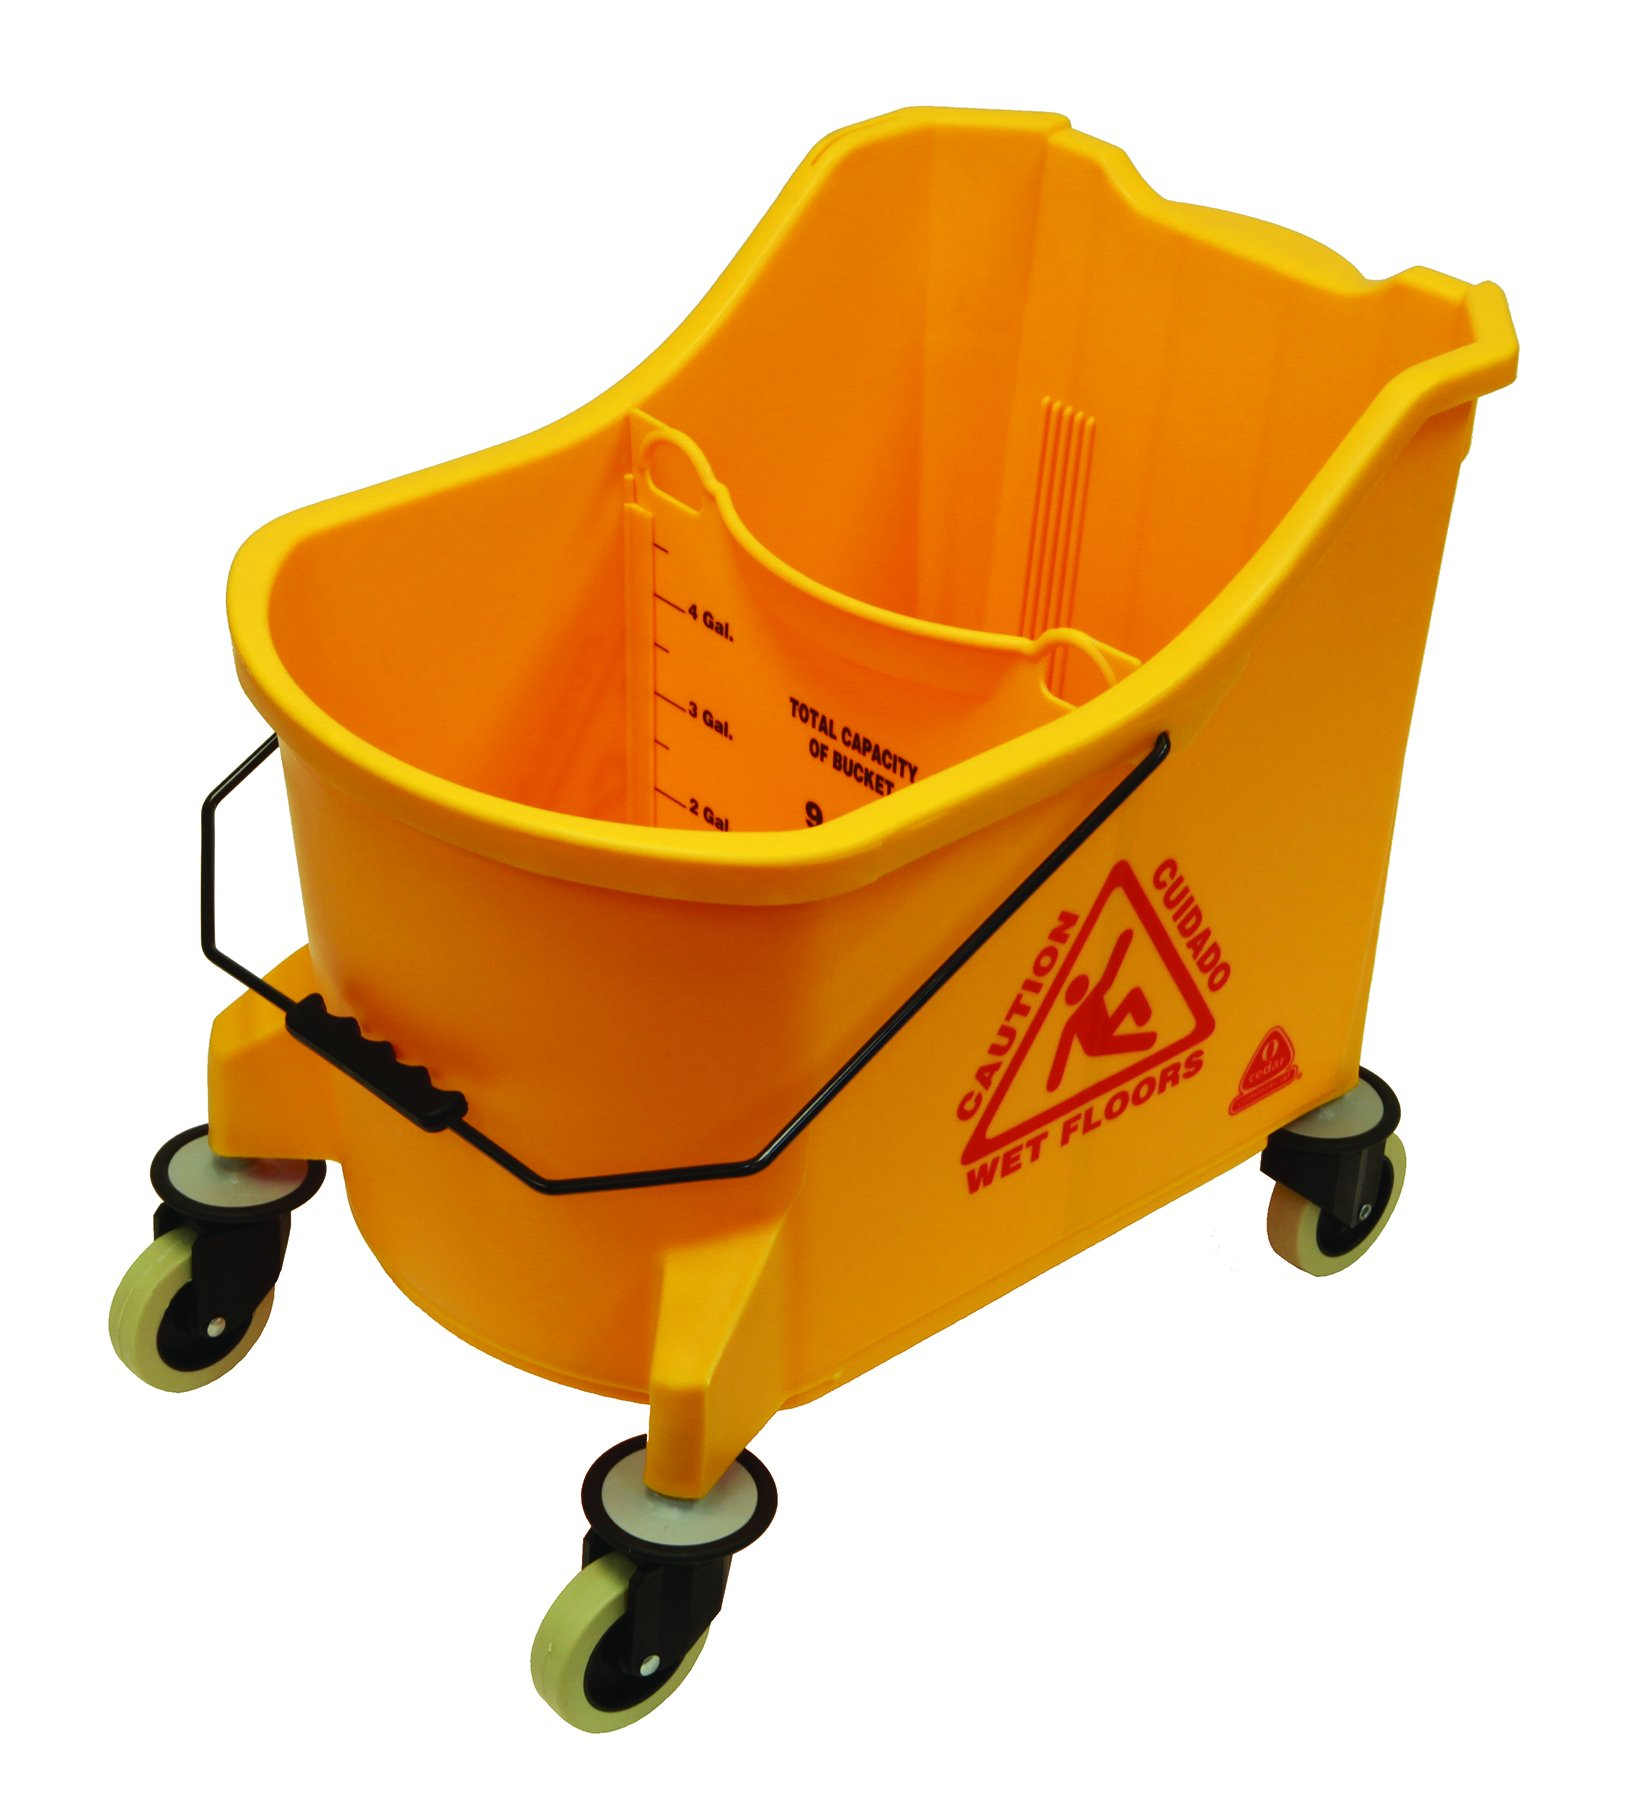 O'Cedar Commercial 978 36 quart MaxiPlus Mop Bucket, Yellow